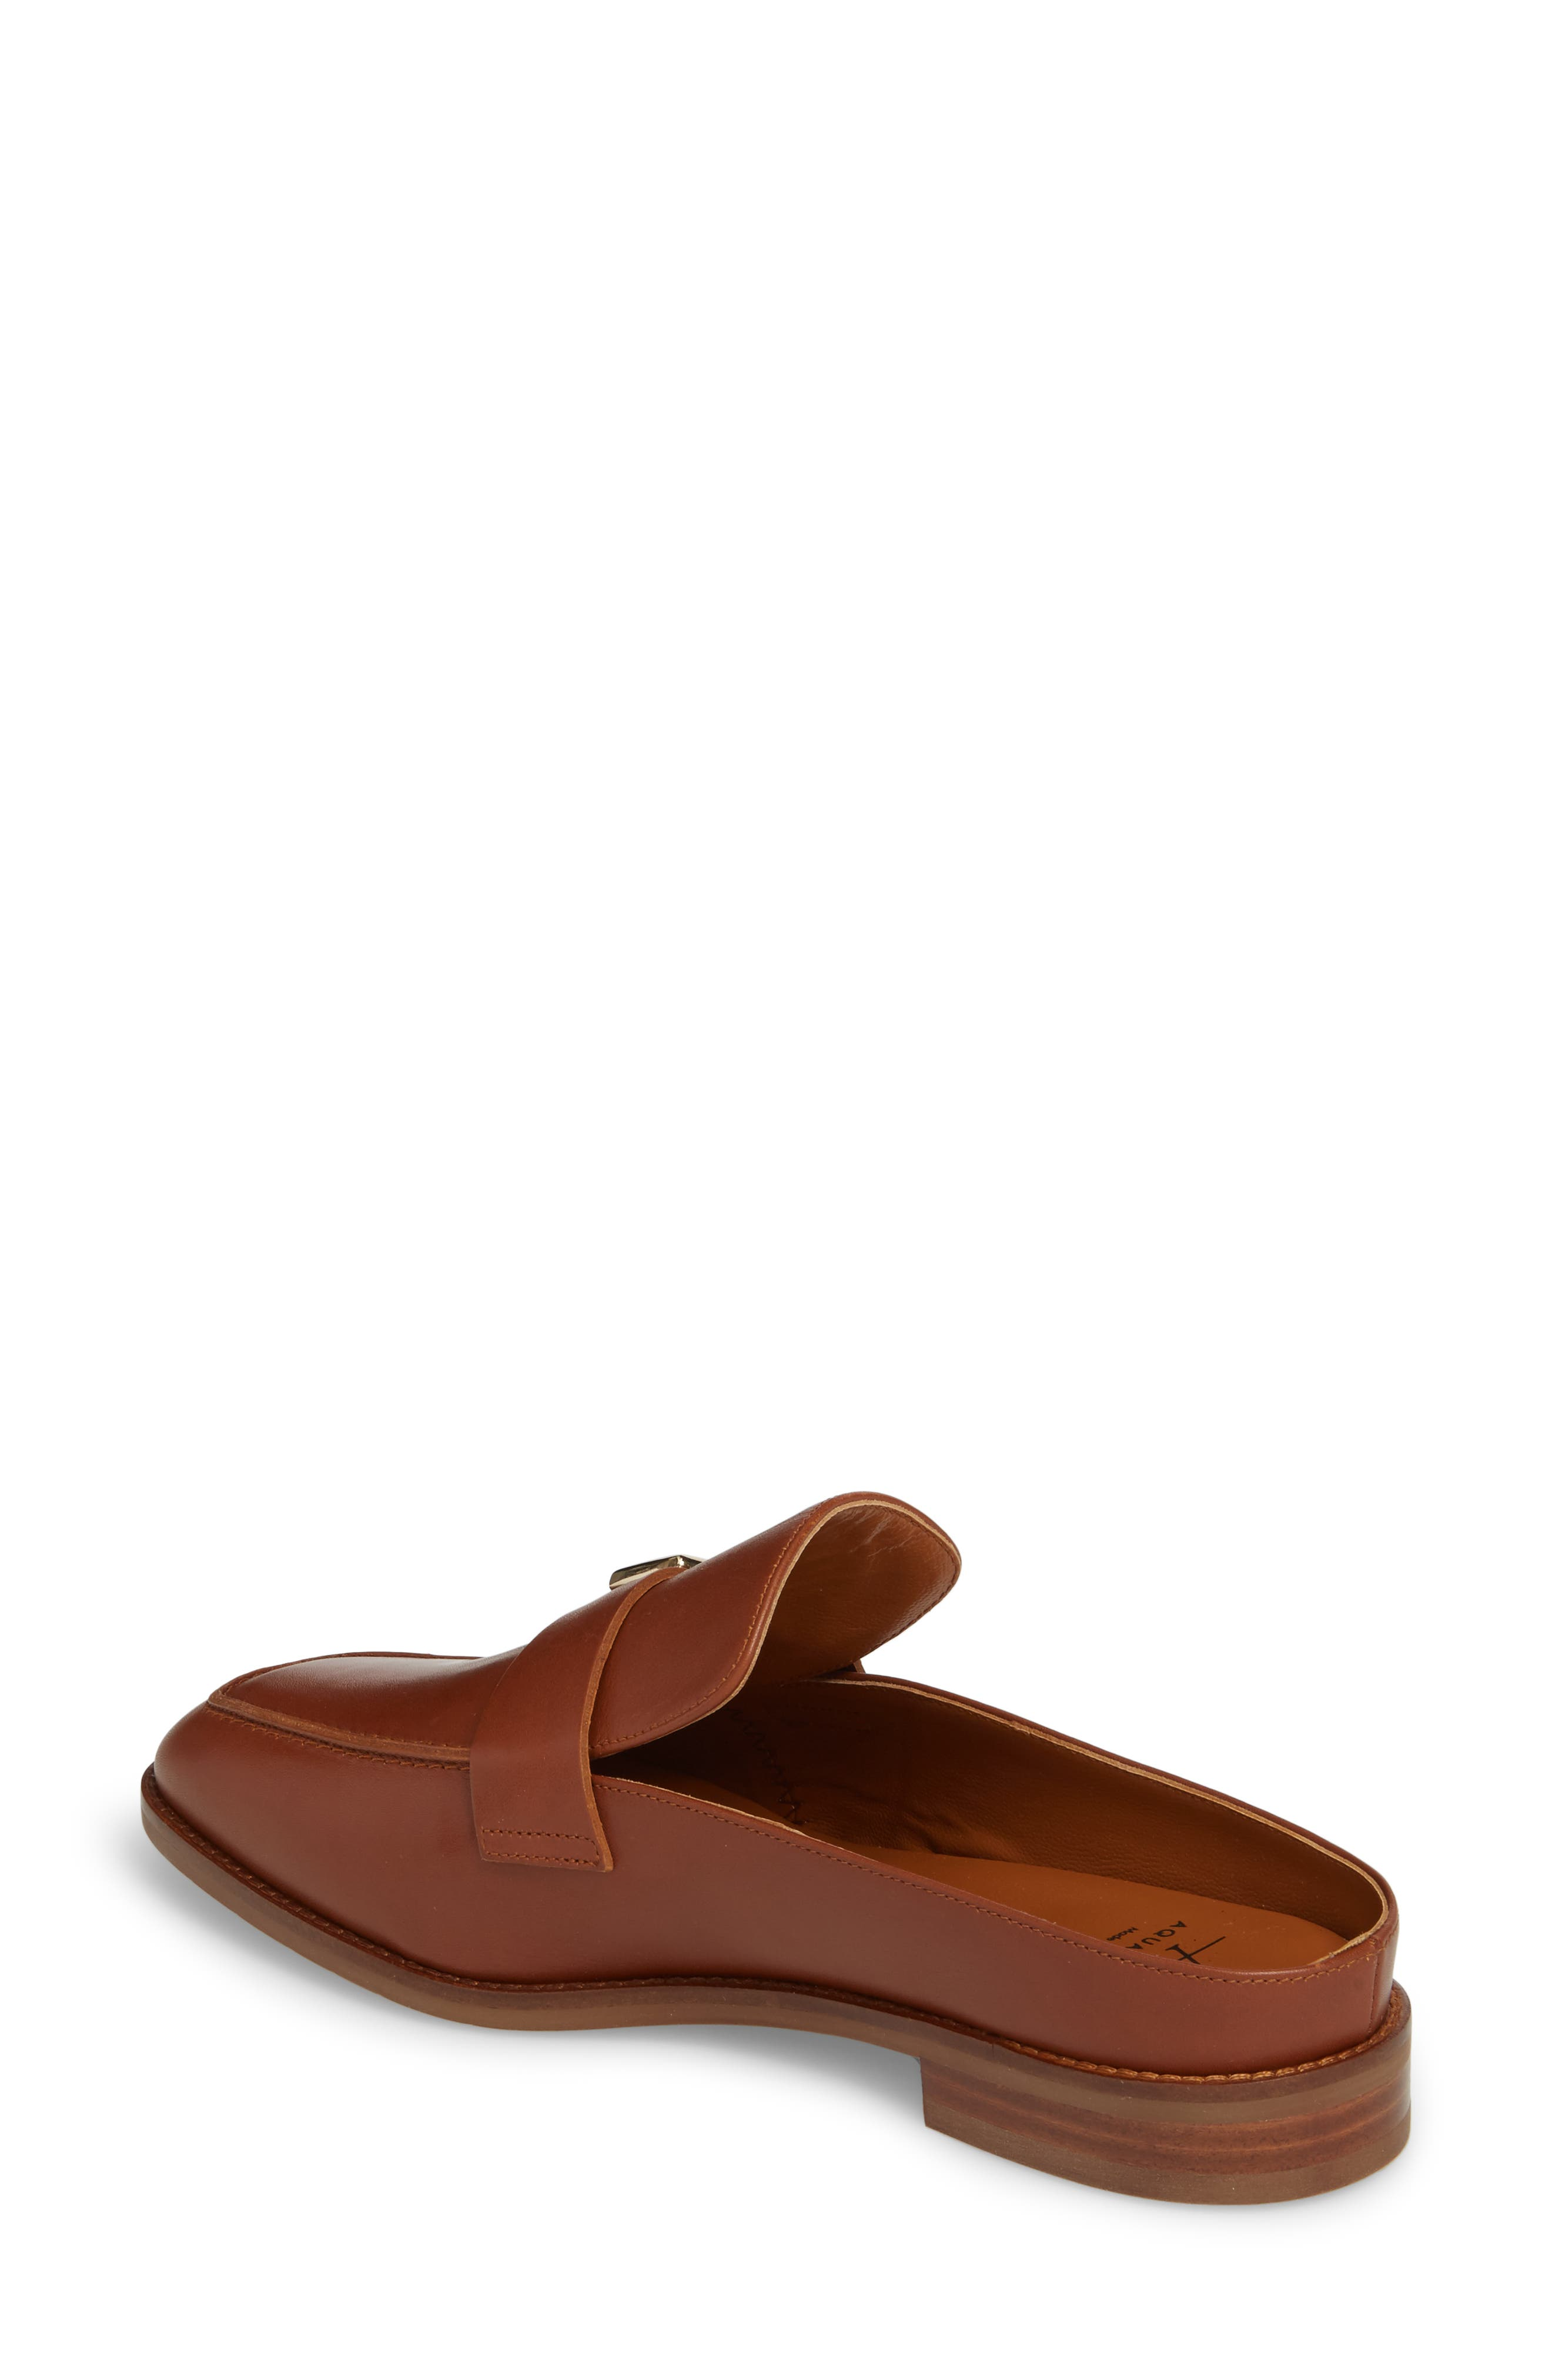 Tosca Loafer Mule,                             Alternate thumbnail 3, color,